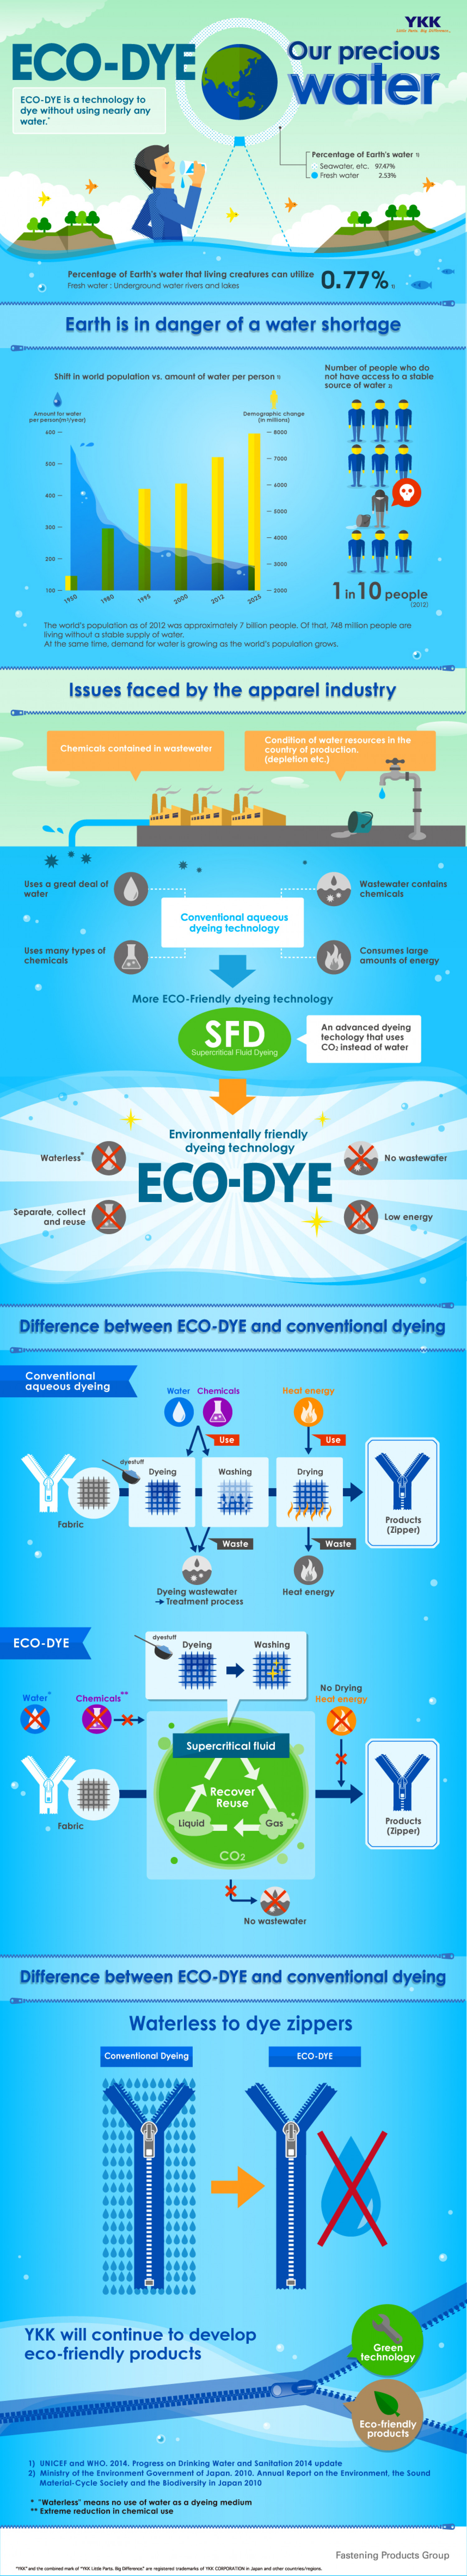 """ECO-DYE"": New YKK Dyeing Technology Significantly Reduces Water Use Infographic"